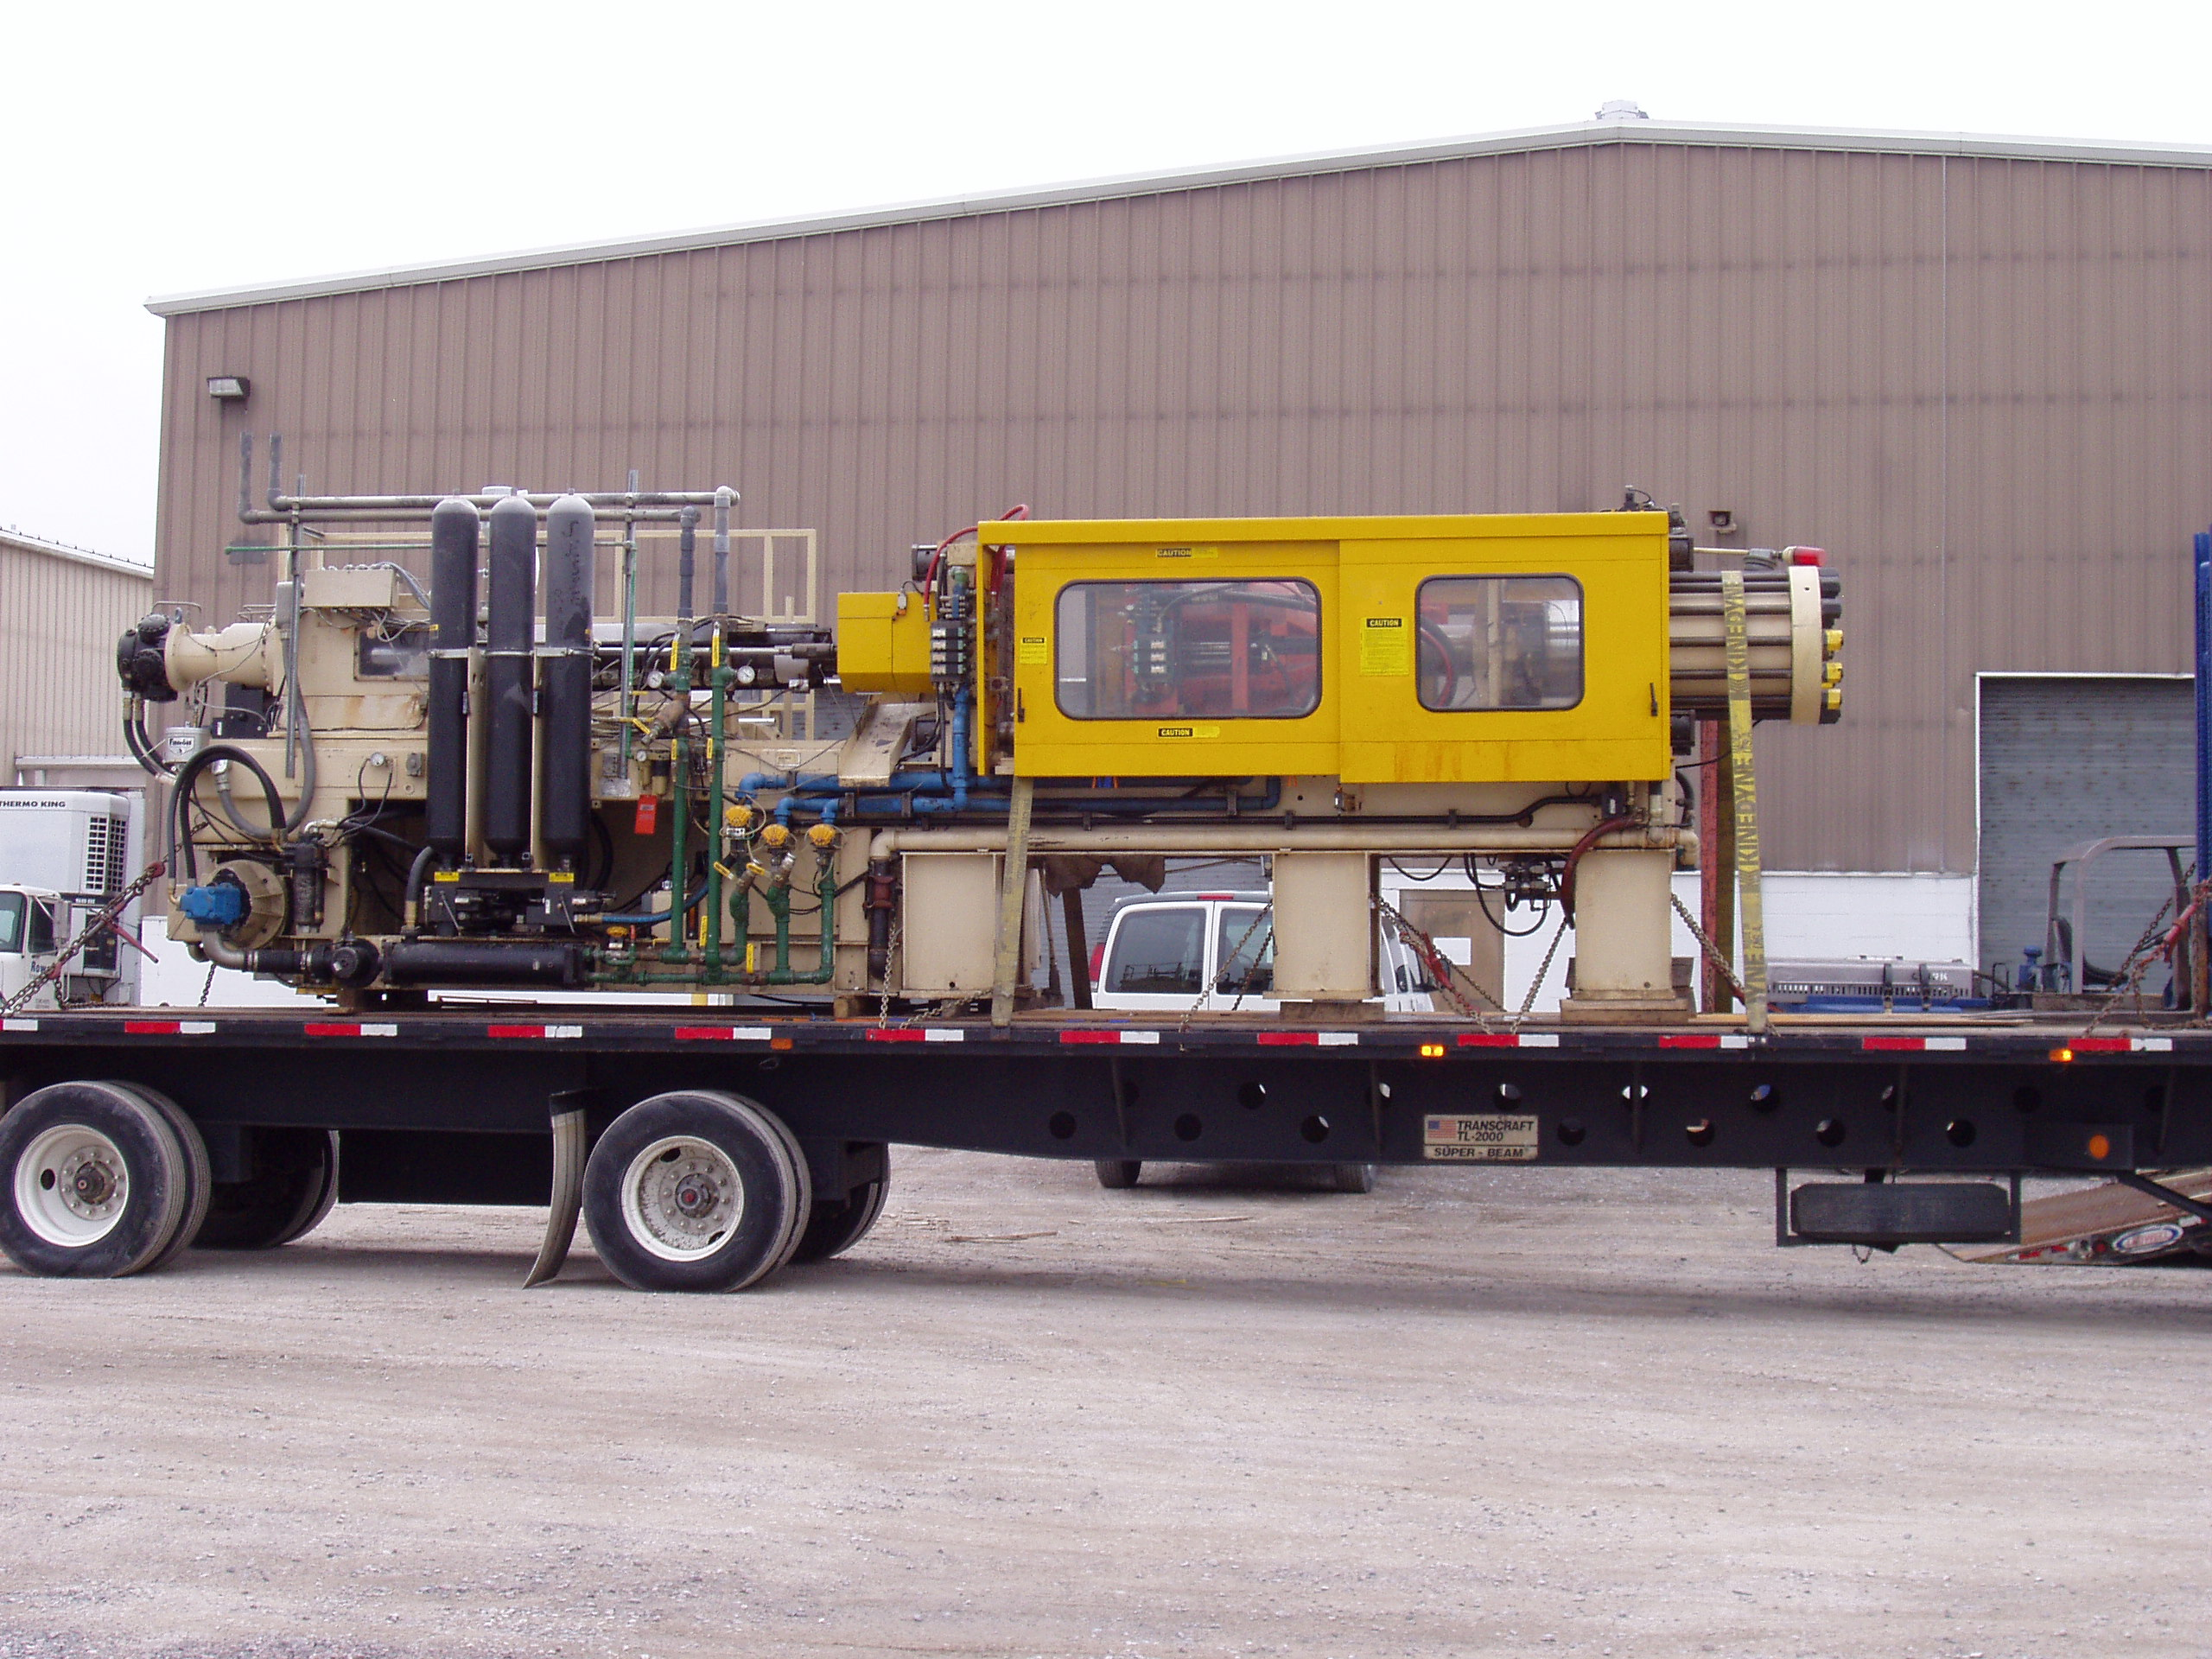 flat bed trucking carrying equipment, Rowe Transfer